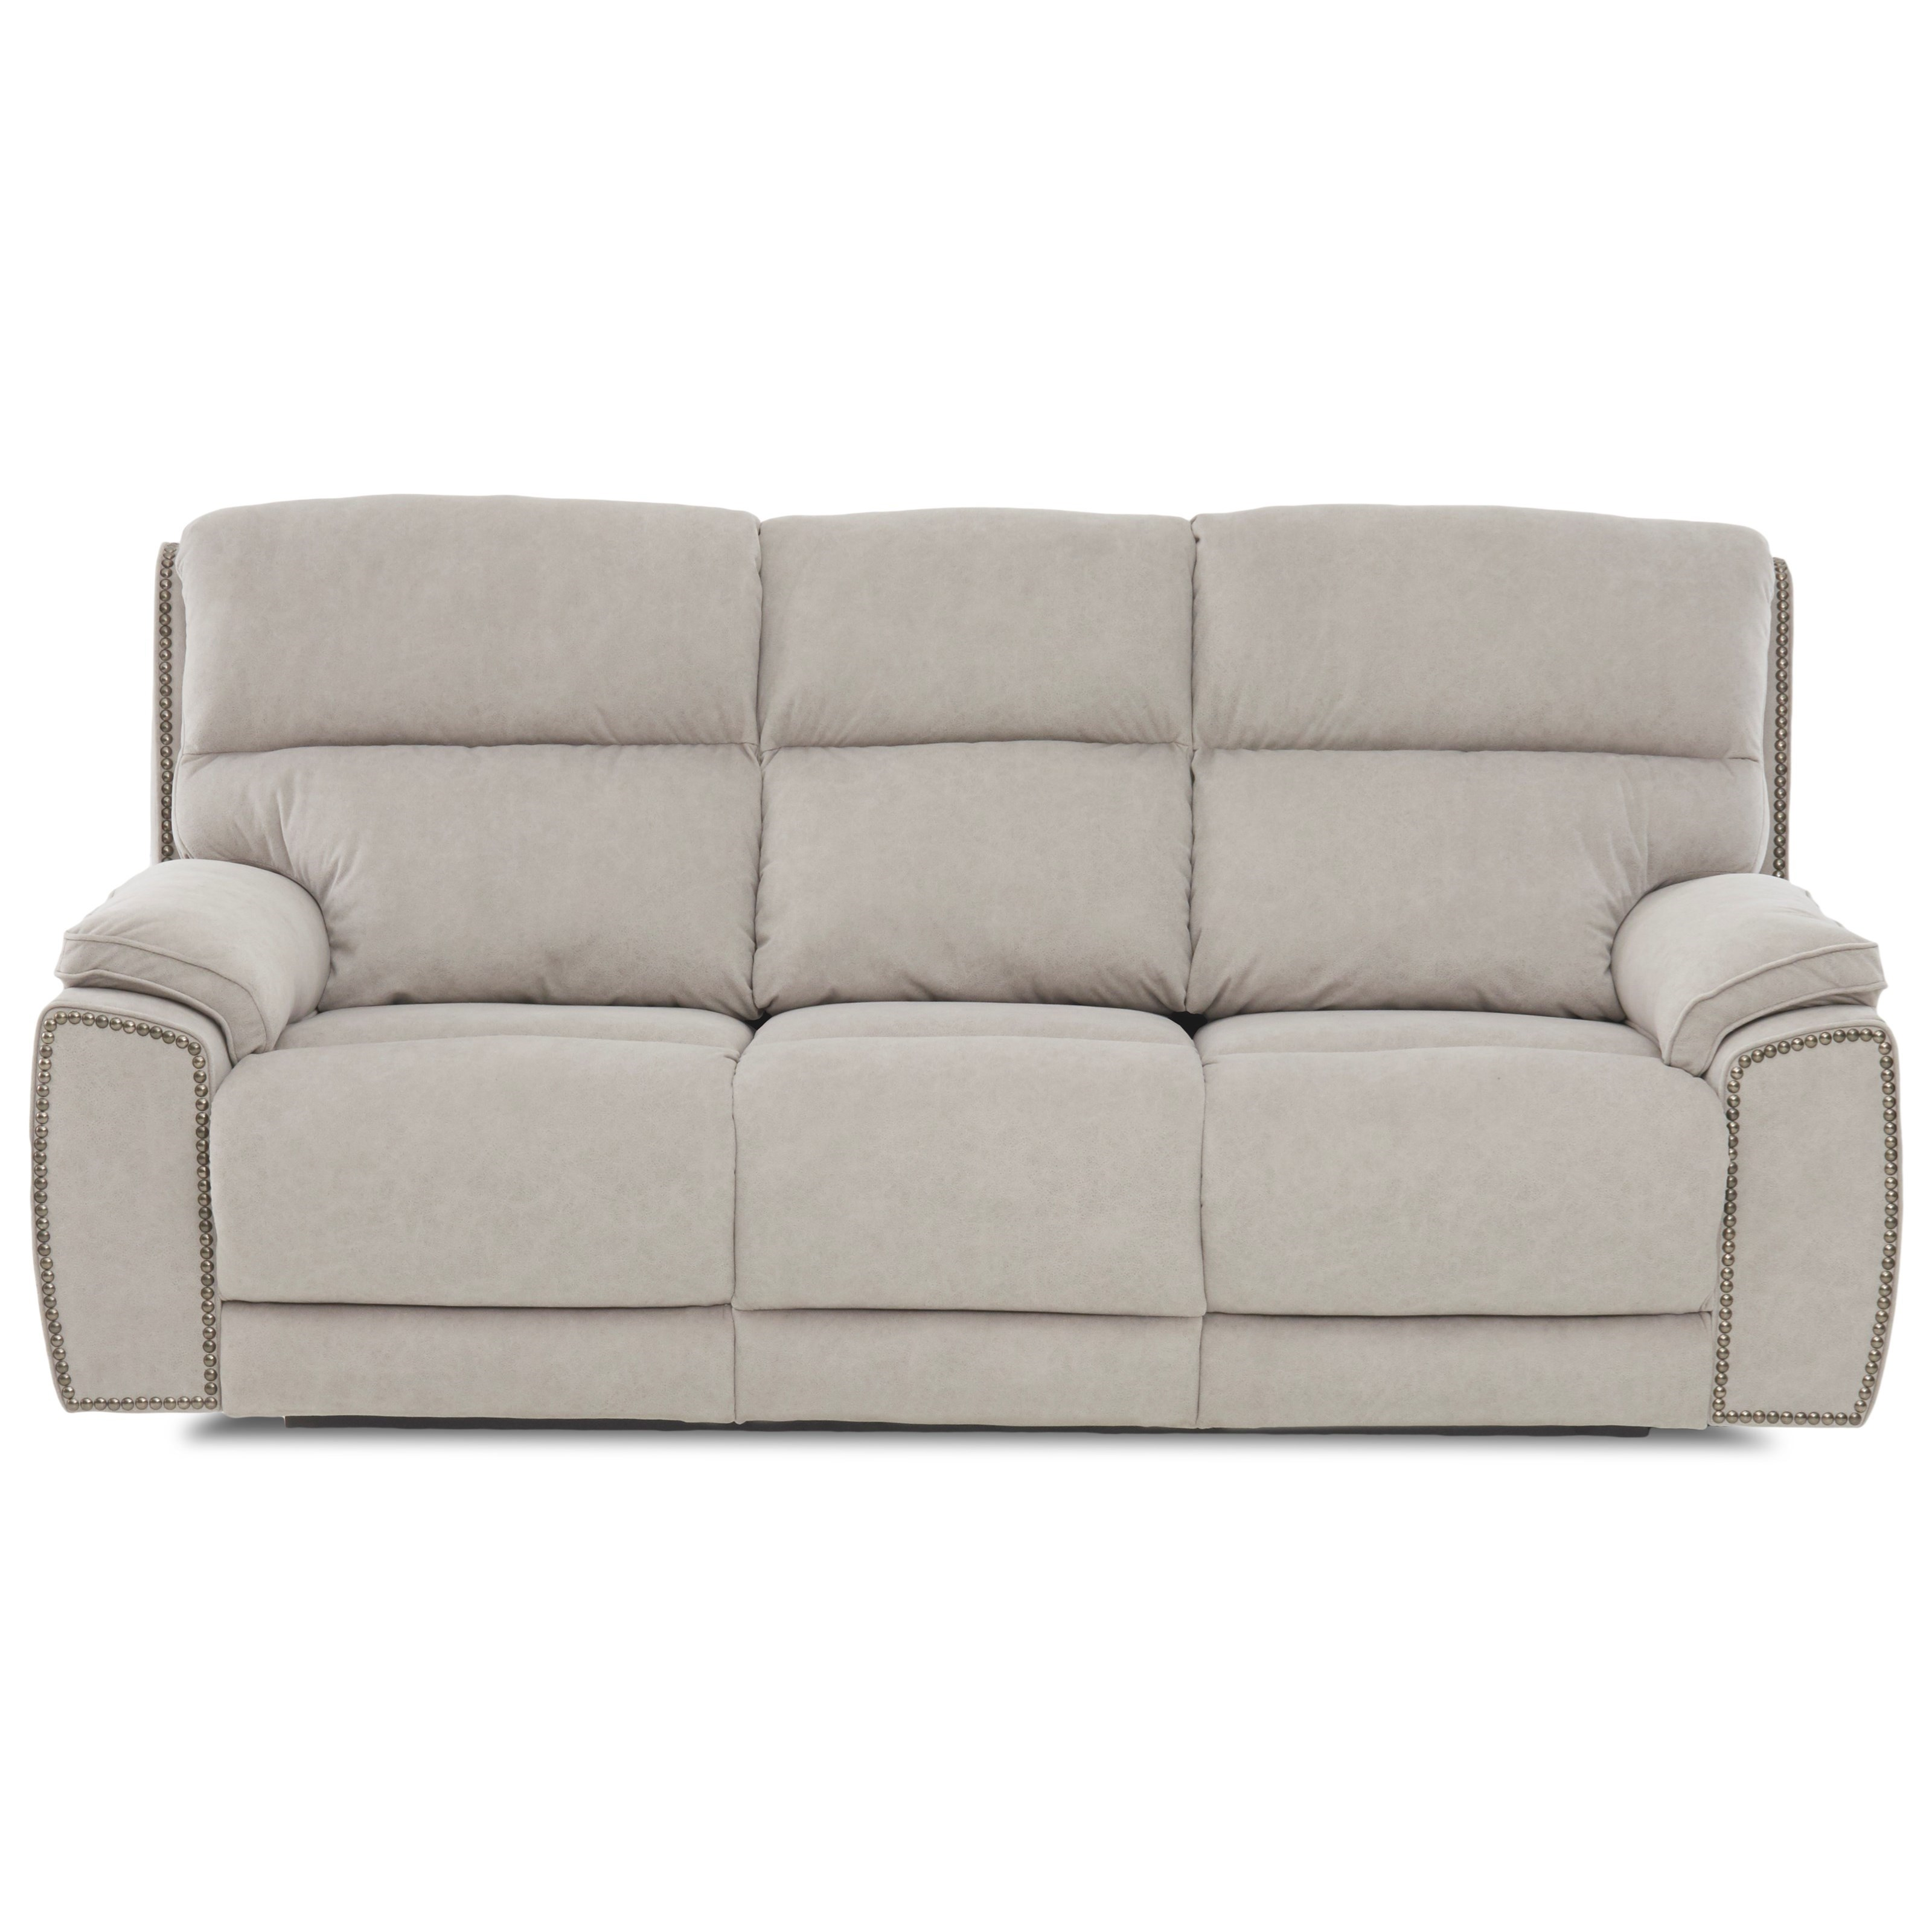 Omaha Reclining Sofa w/ Nails by Klaussner at Catalog Outlet